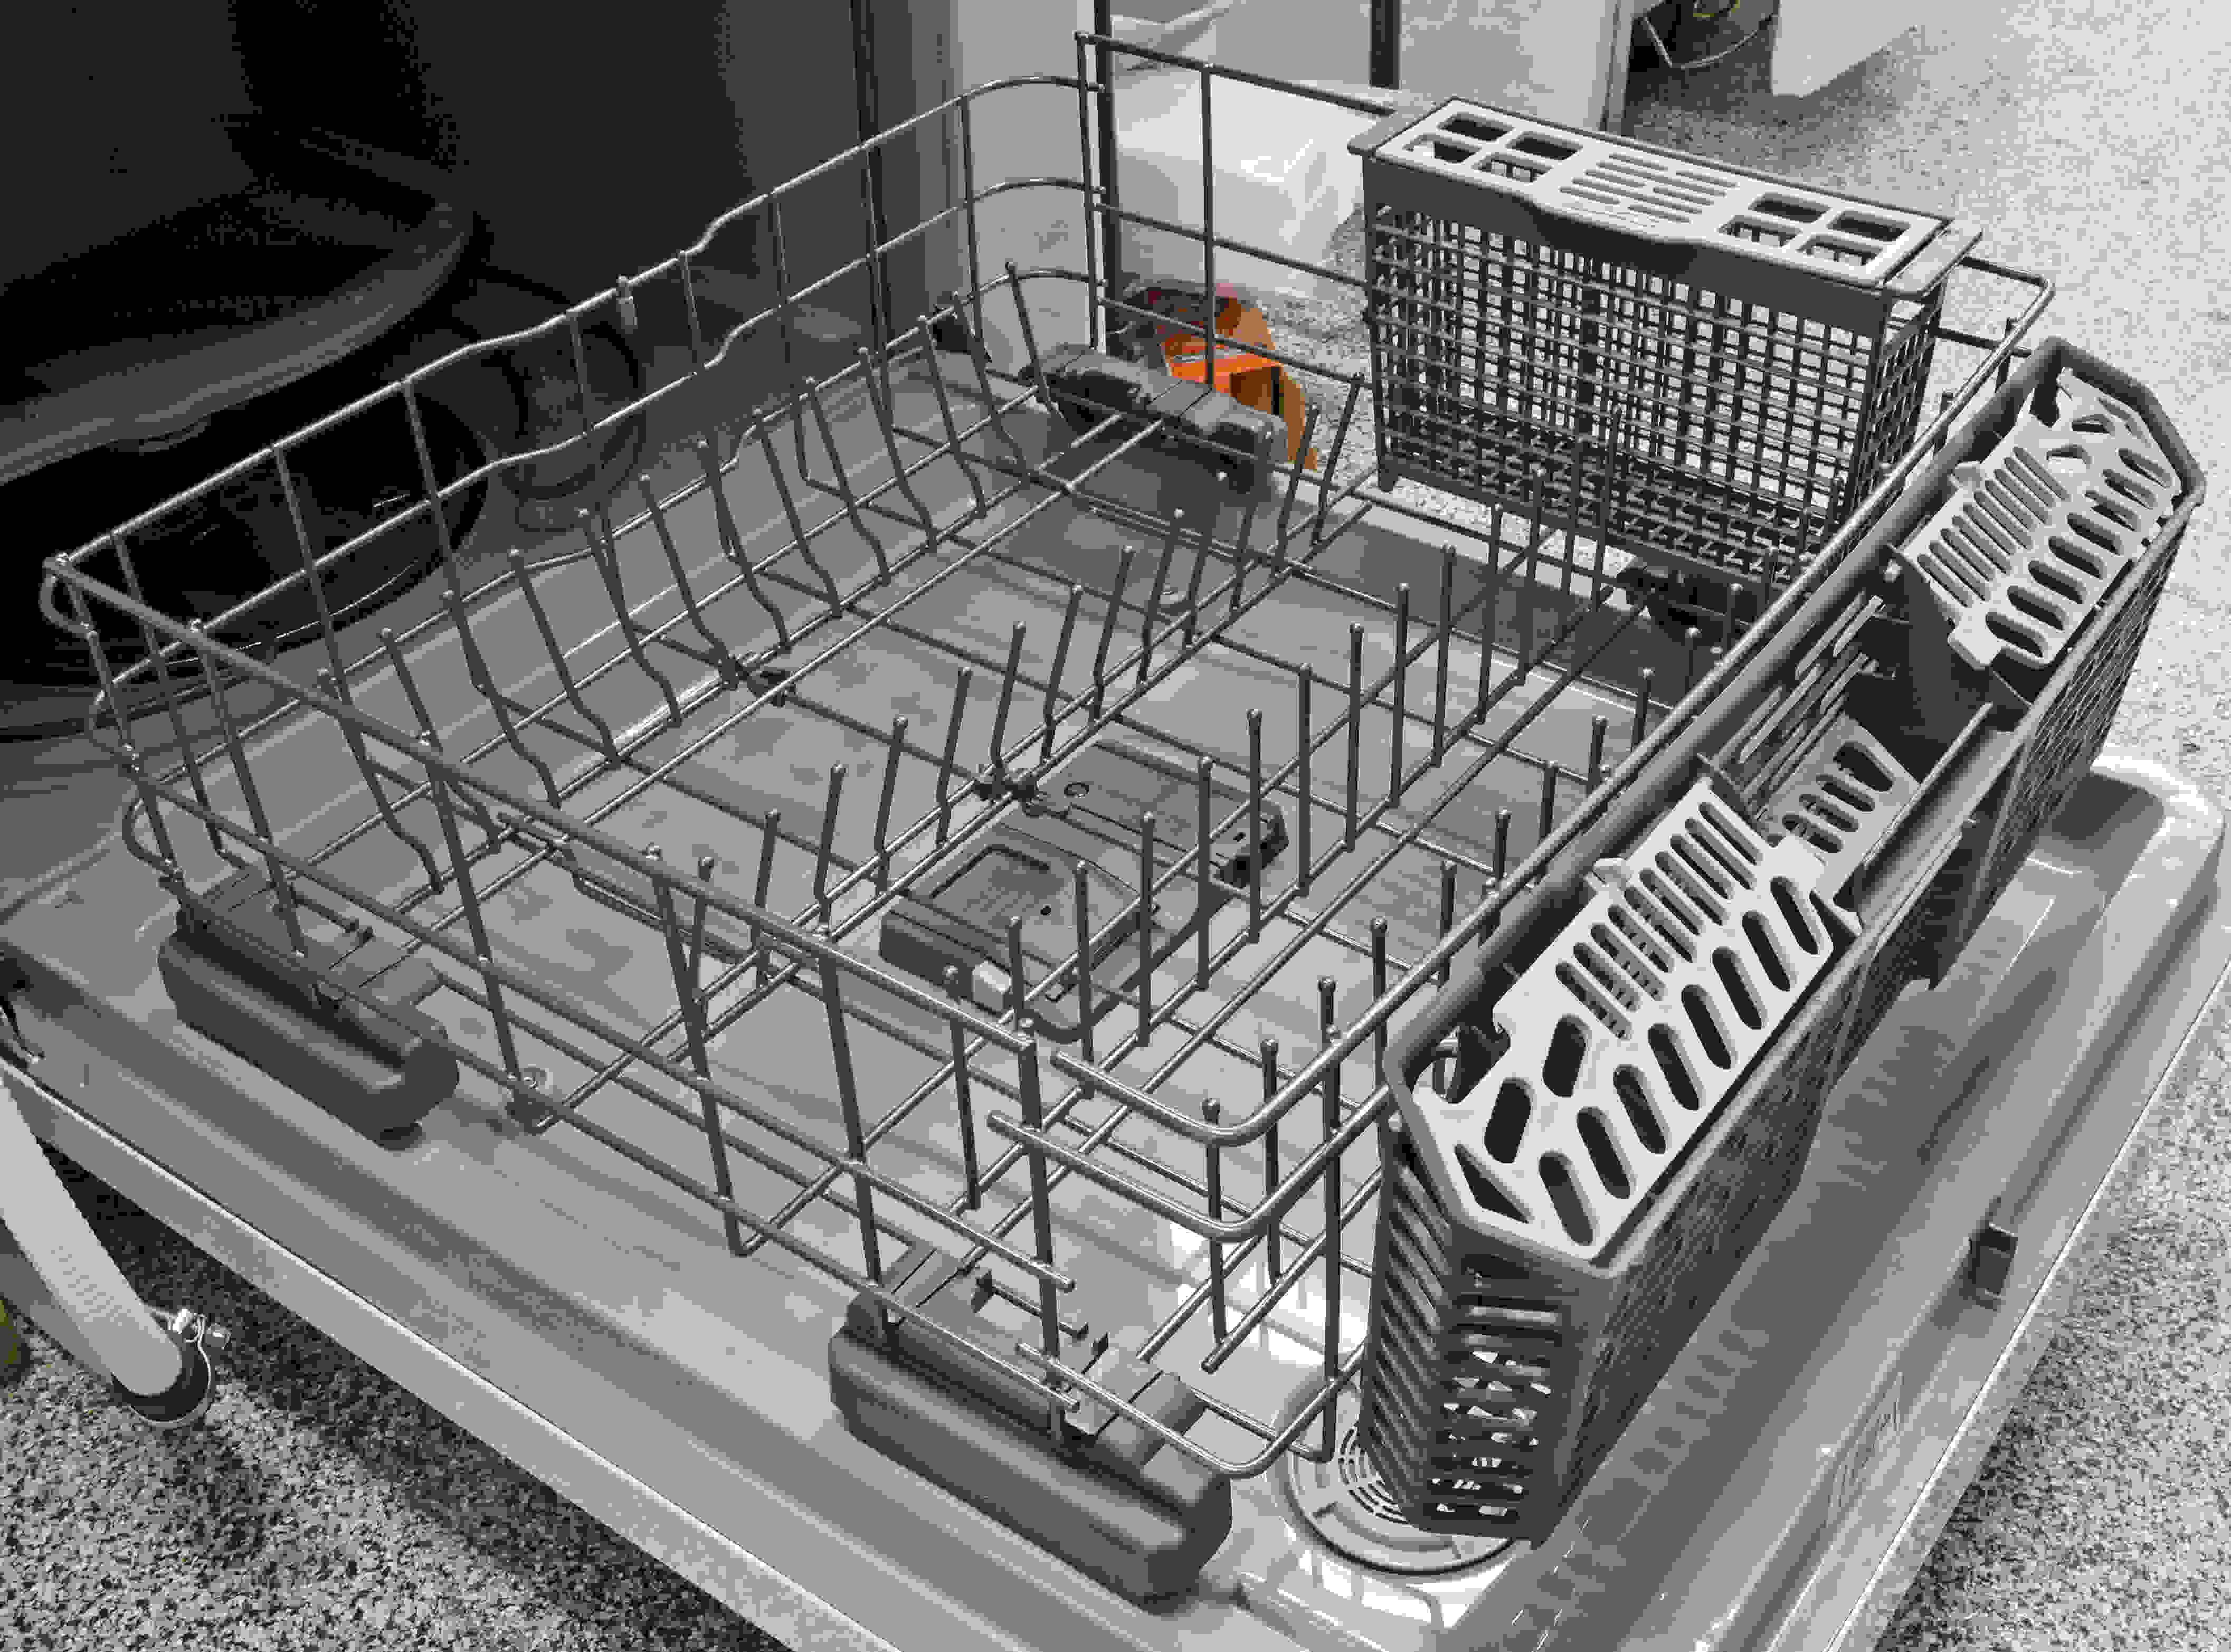 Nothing fancy on the lower rack, except for the unusual sight of dueling cutlery baskets—neither of which blew us away.